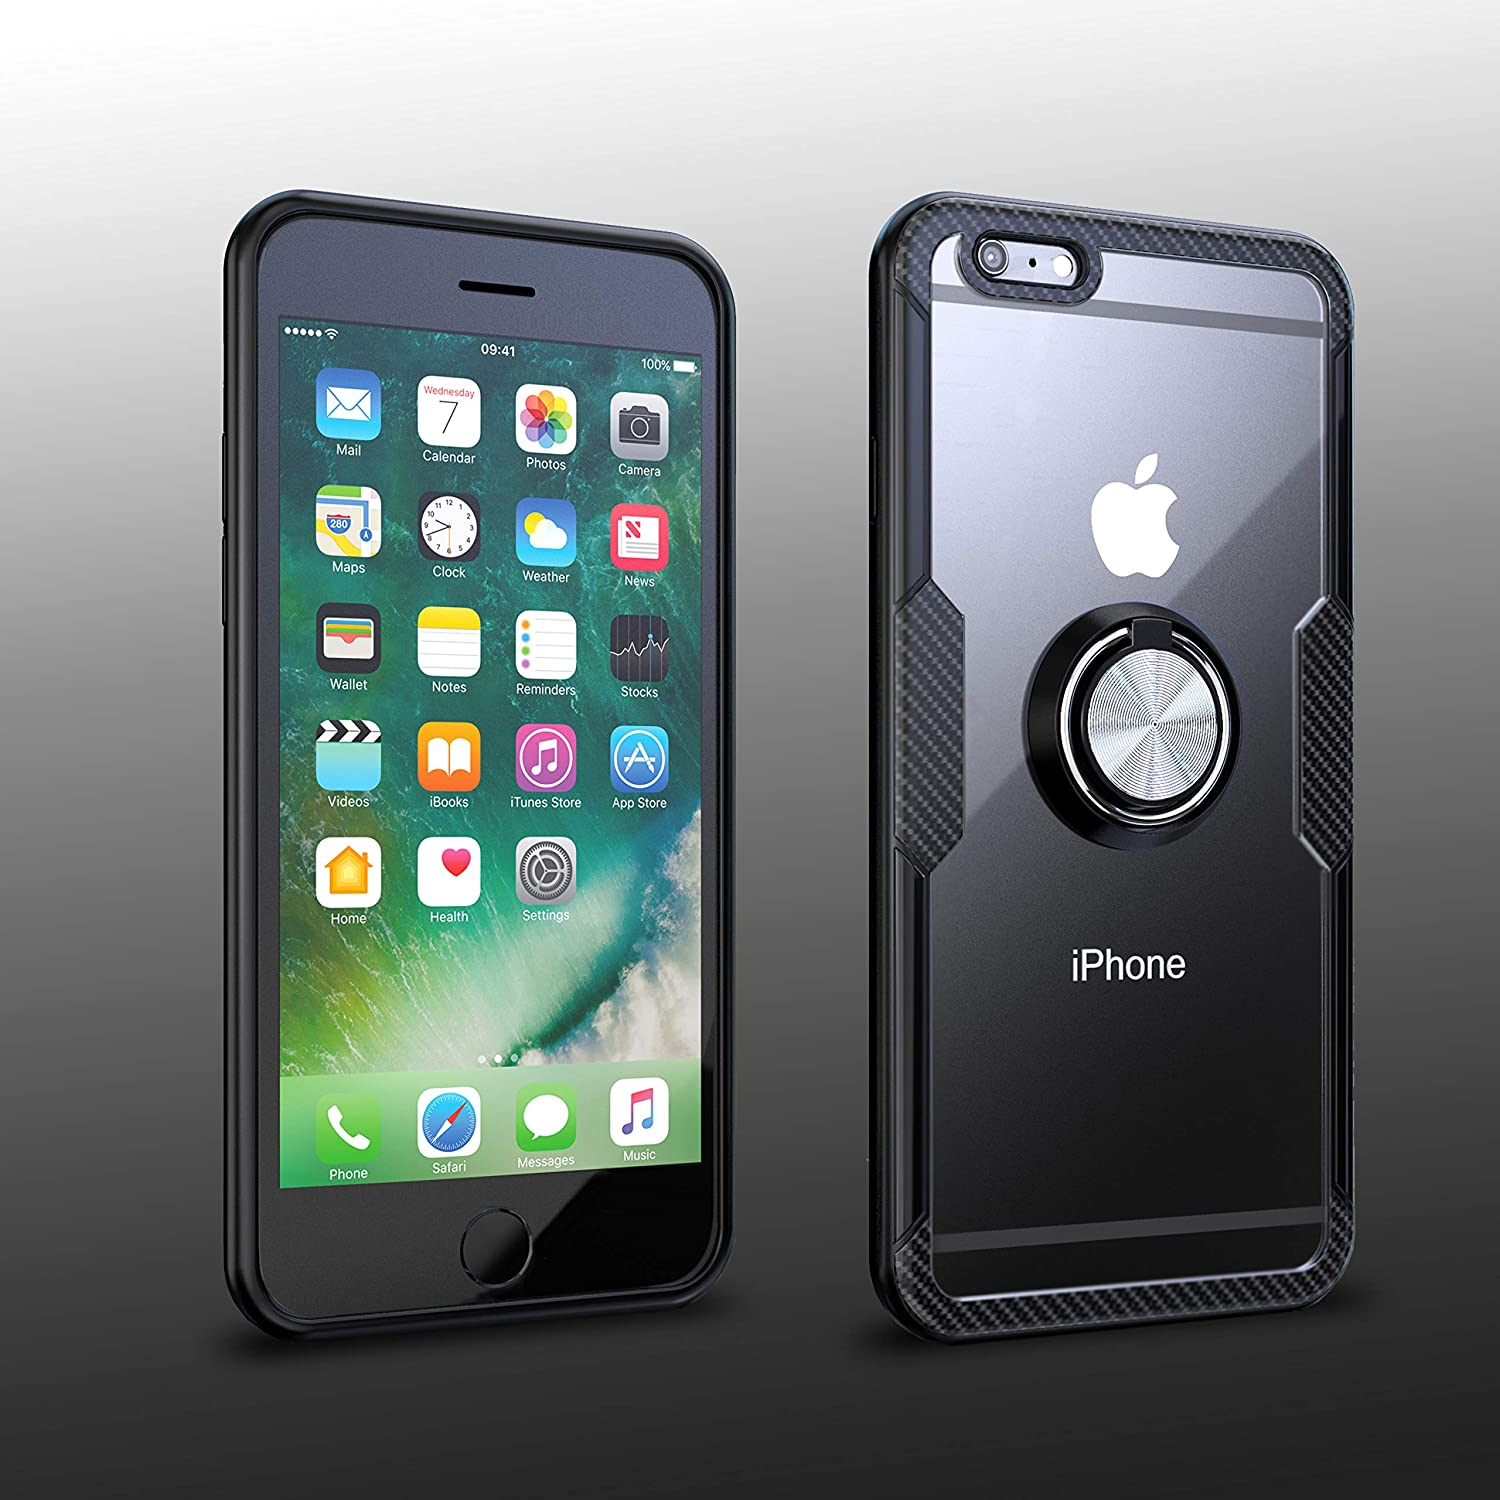 iPhone 6 Plus/iPhone 6S Plus Case   Transparent Crystal Clear Cover   Carbon Fiber Trim & Rubber Bumper   360° Rotating Magnetic Finger Ring  Kickstand   Compatible with iPhone 6+/iPhone 6S+ - Black